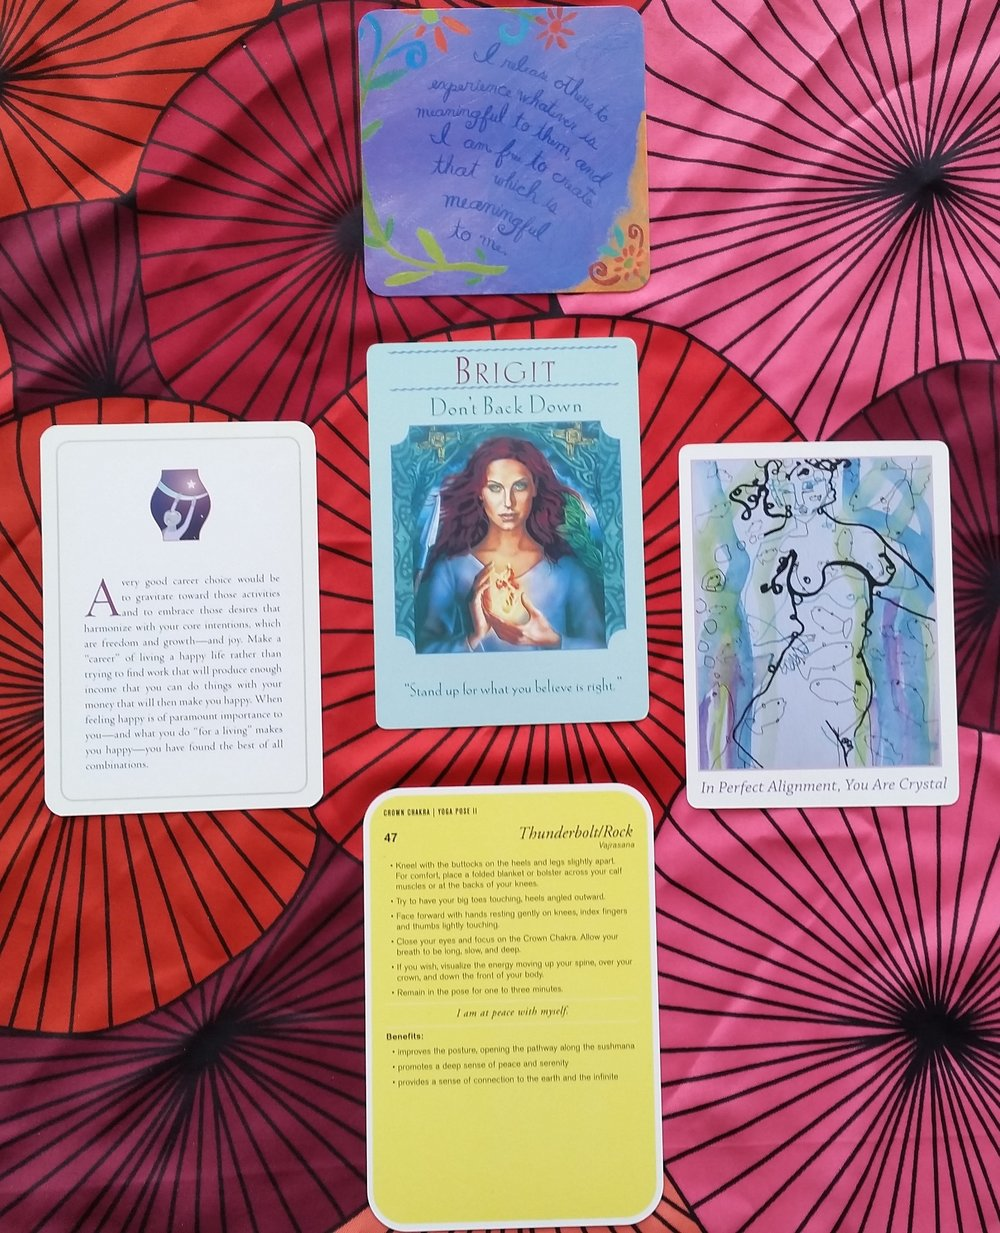 Keep reading below for card interpretations.